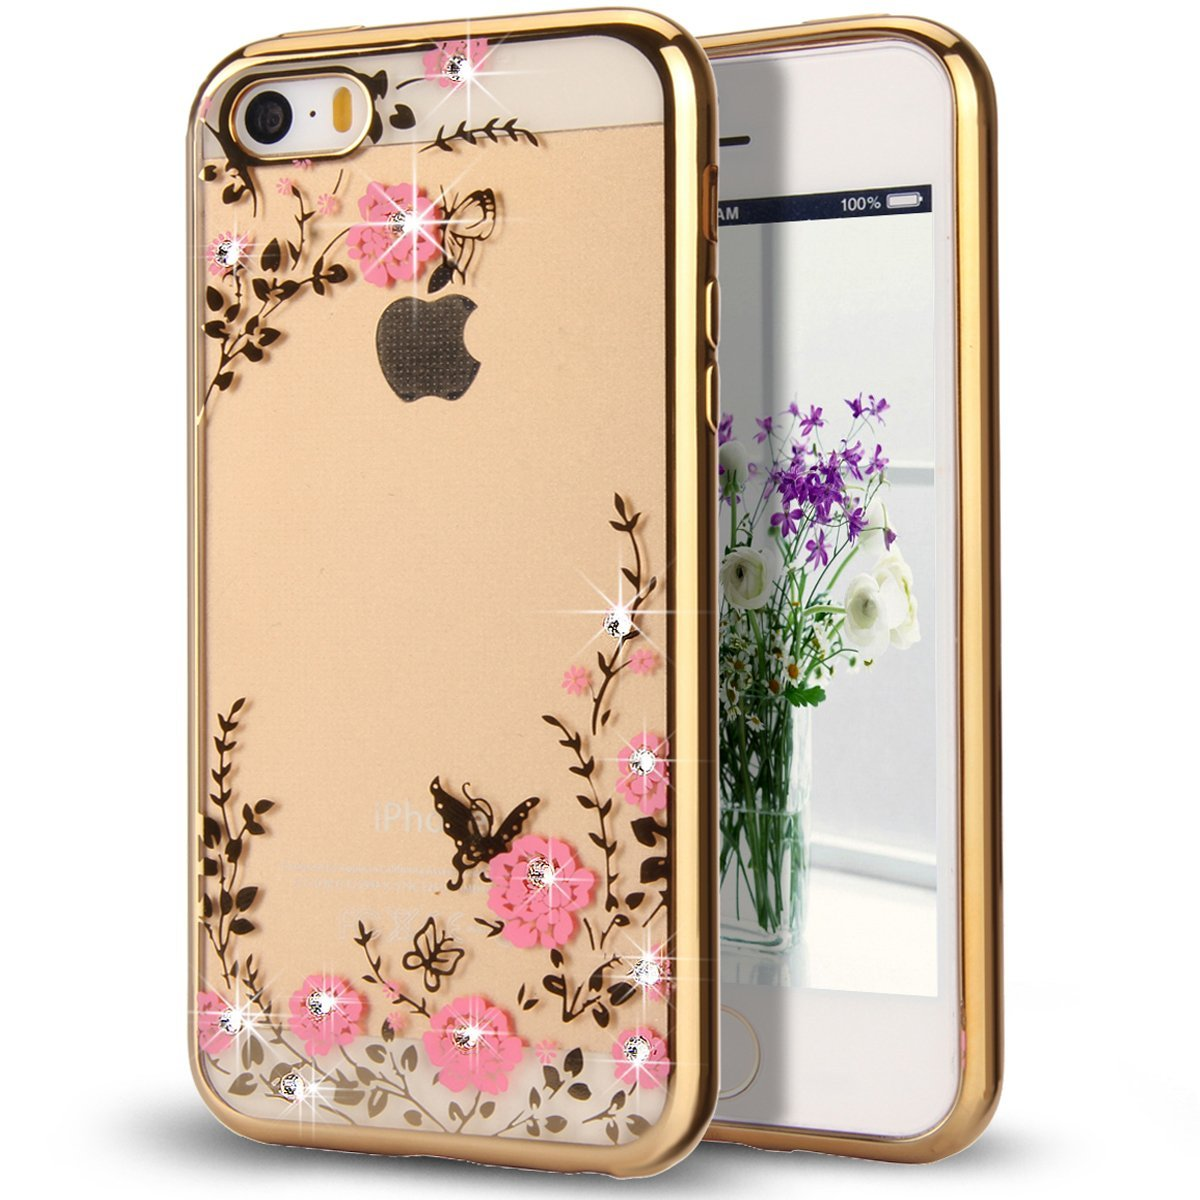 Pouzdro Crystal Flowers iPhone SE / 5s / 5 gold